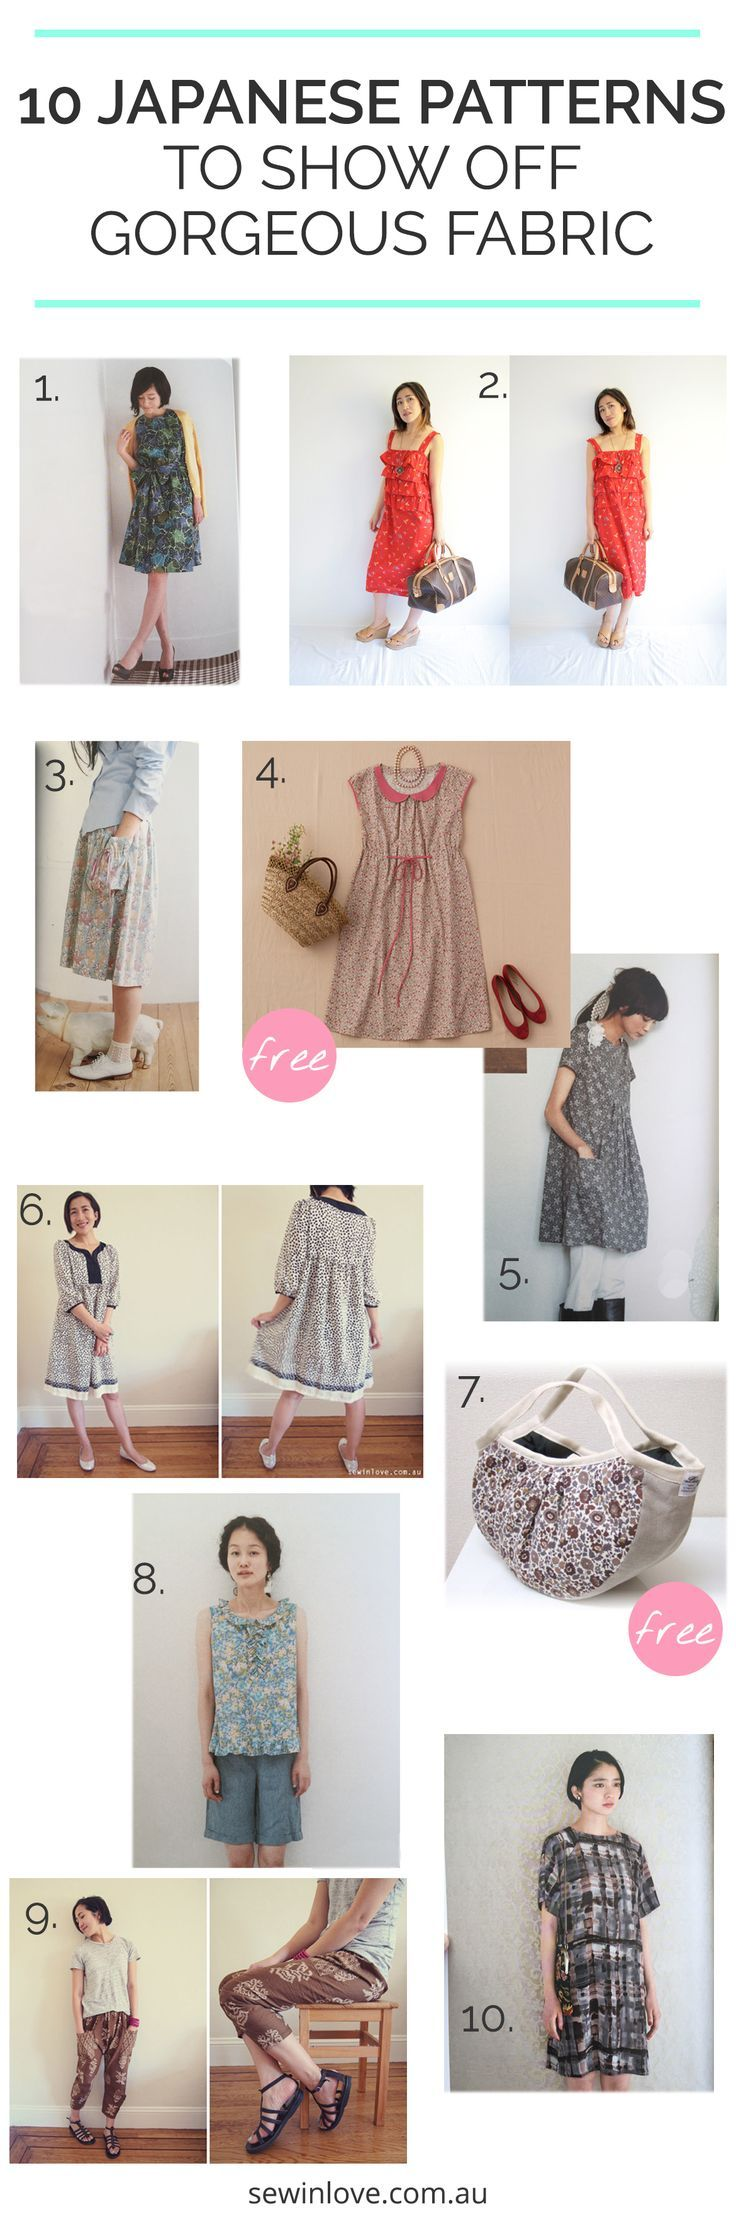 556 best sewing projects images on pinterest sewing ideas sewing patterns and sewing projects